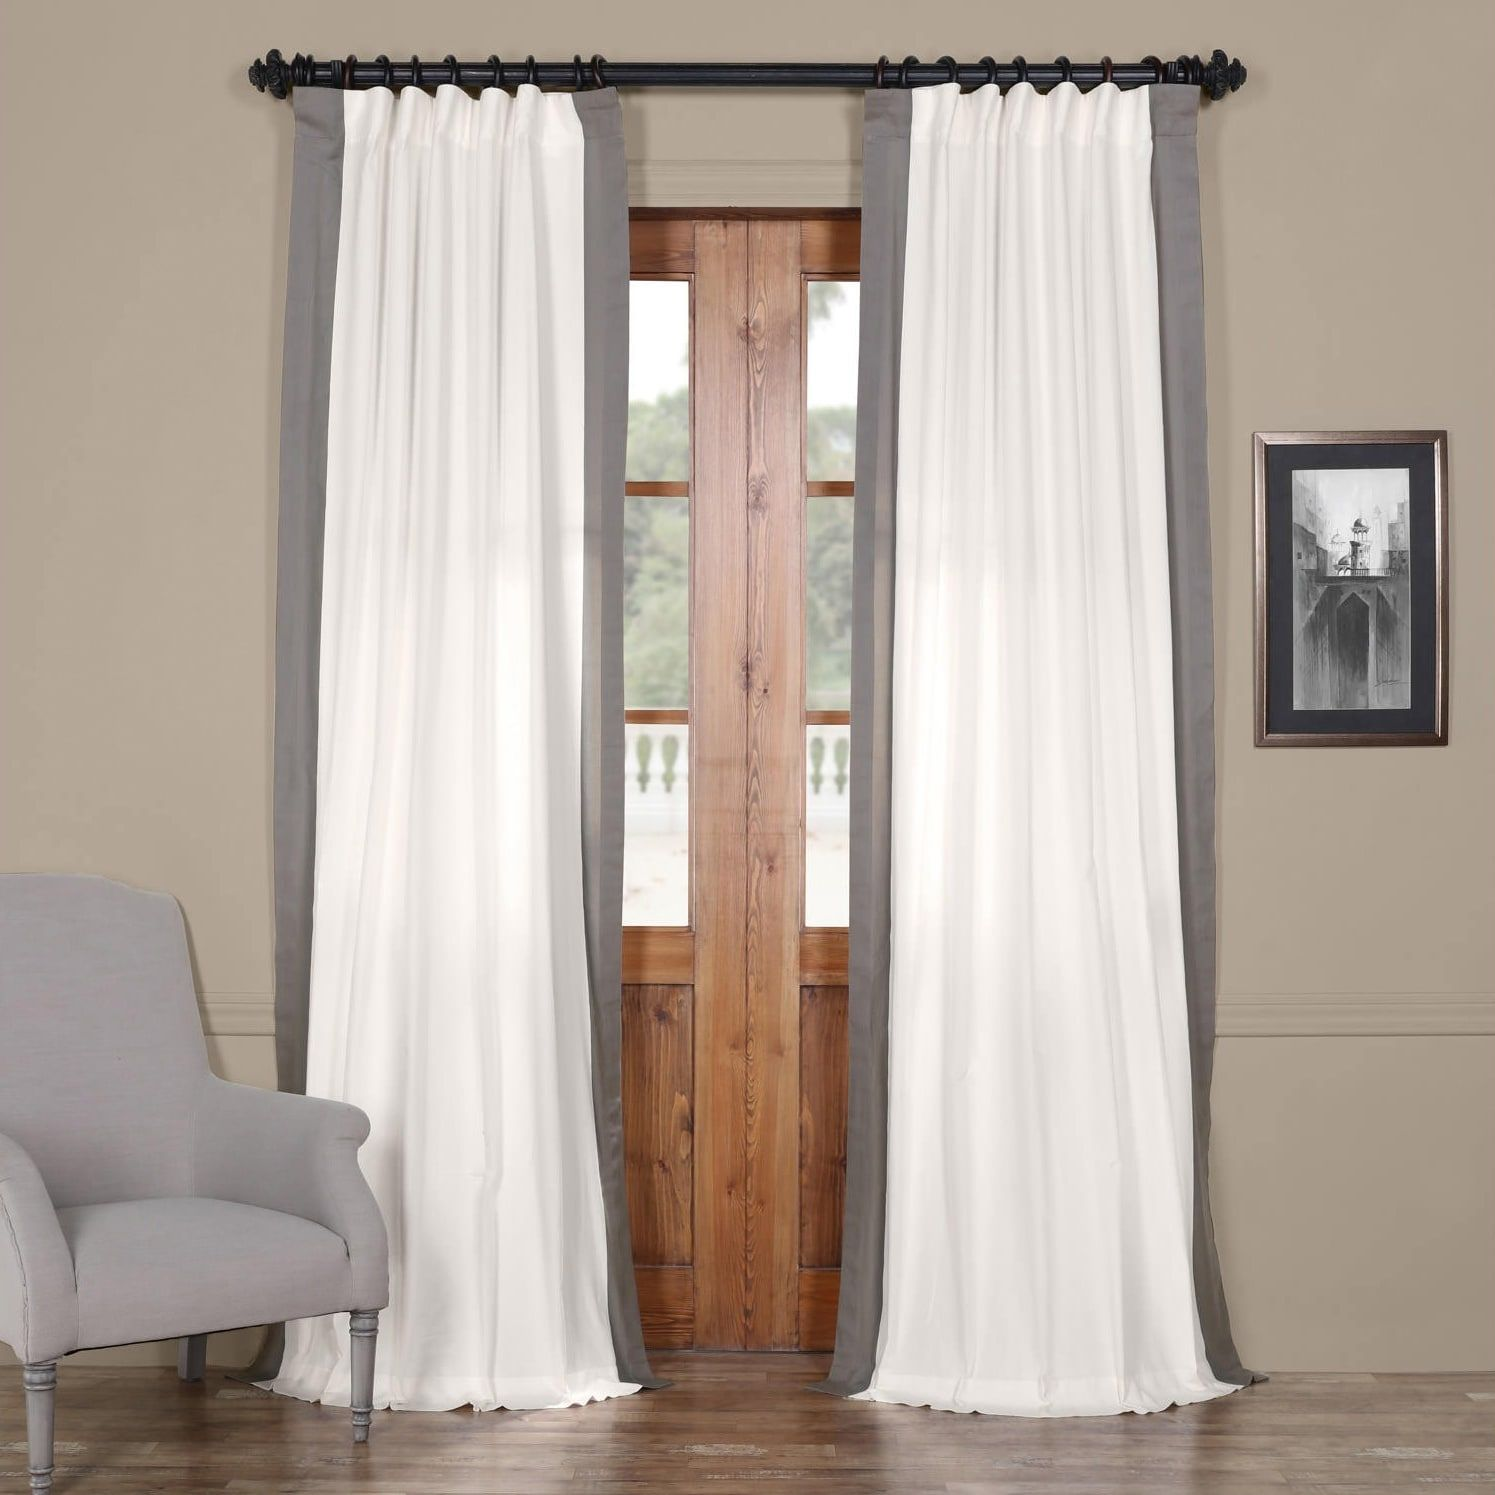 gray off good ideas drapes bathroom treatments size photos patterns com with window of for overstock full white glittering less inspirations curtains